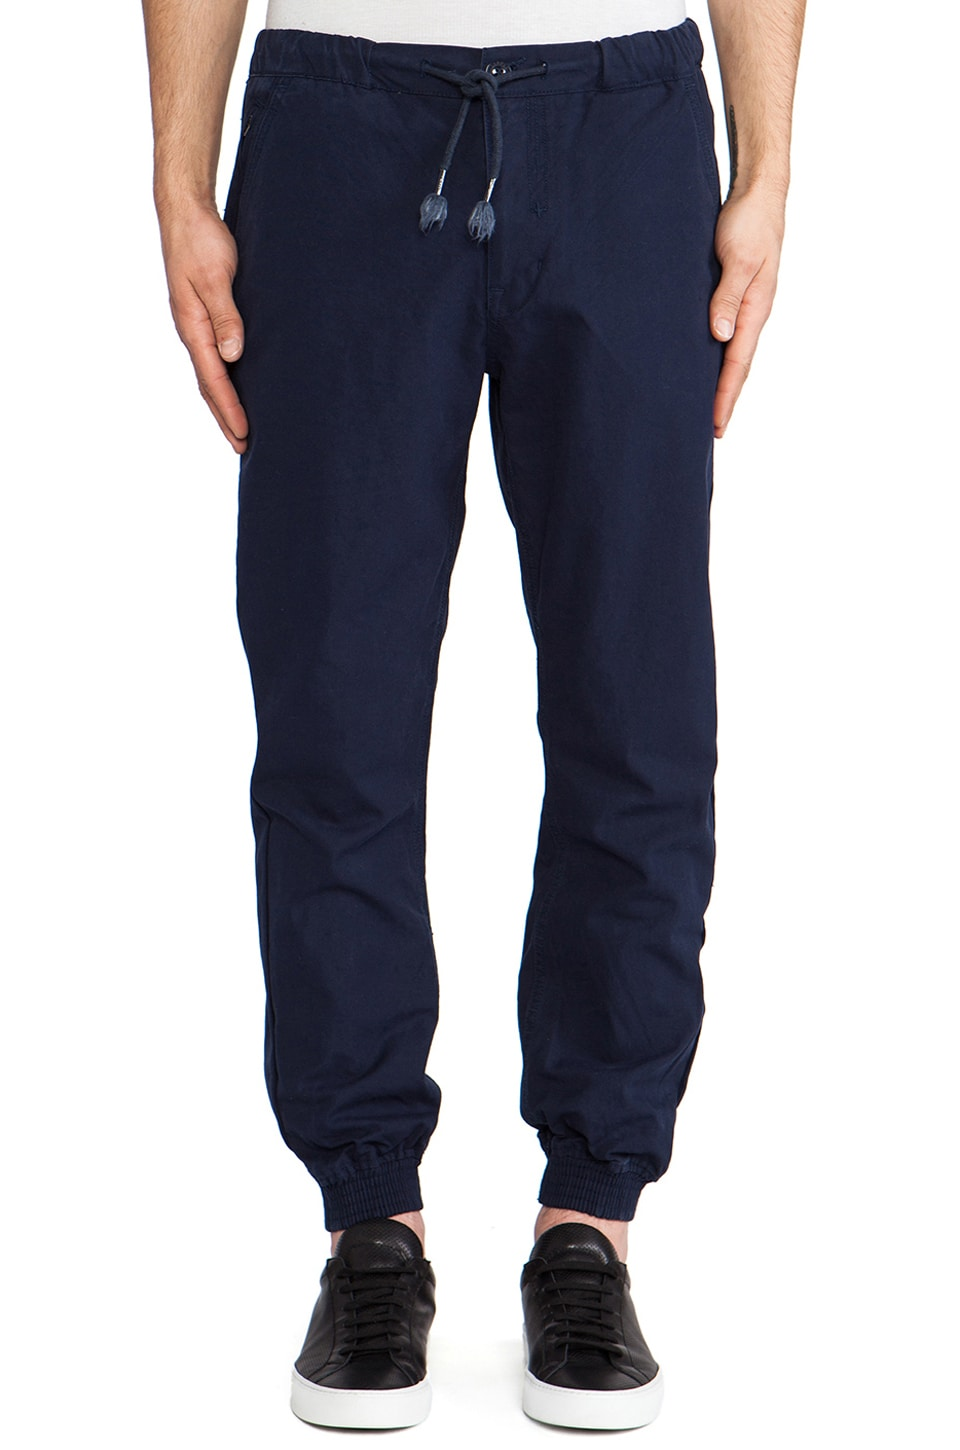 Staple Walton Cuff Pant in Blue